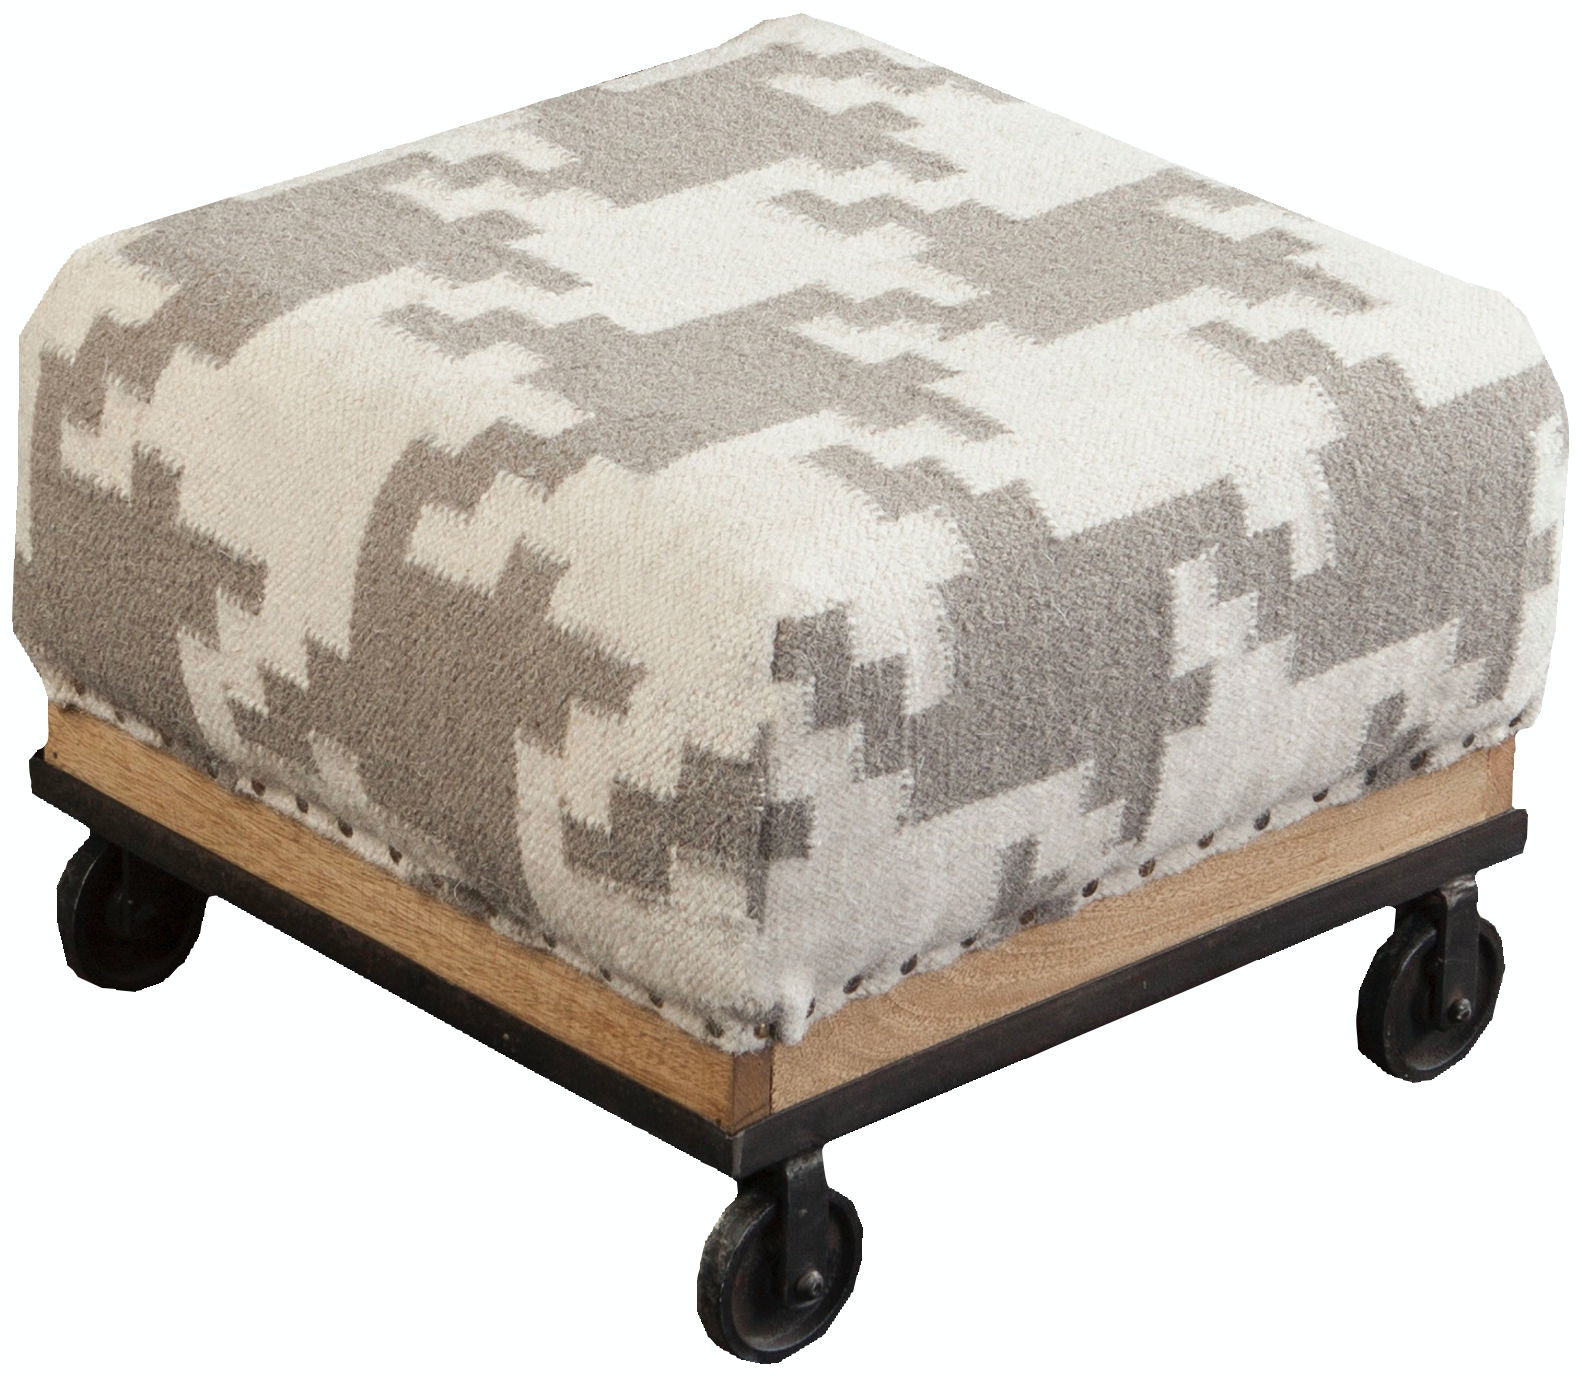 Surya Furniture 16.8 X 16.8 X 11.6 Foot Stool FL1166 424229